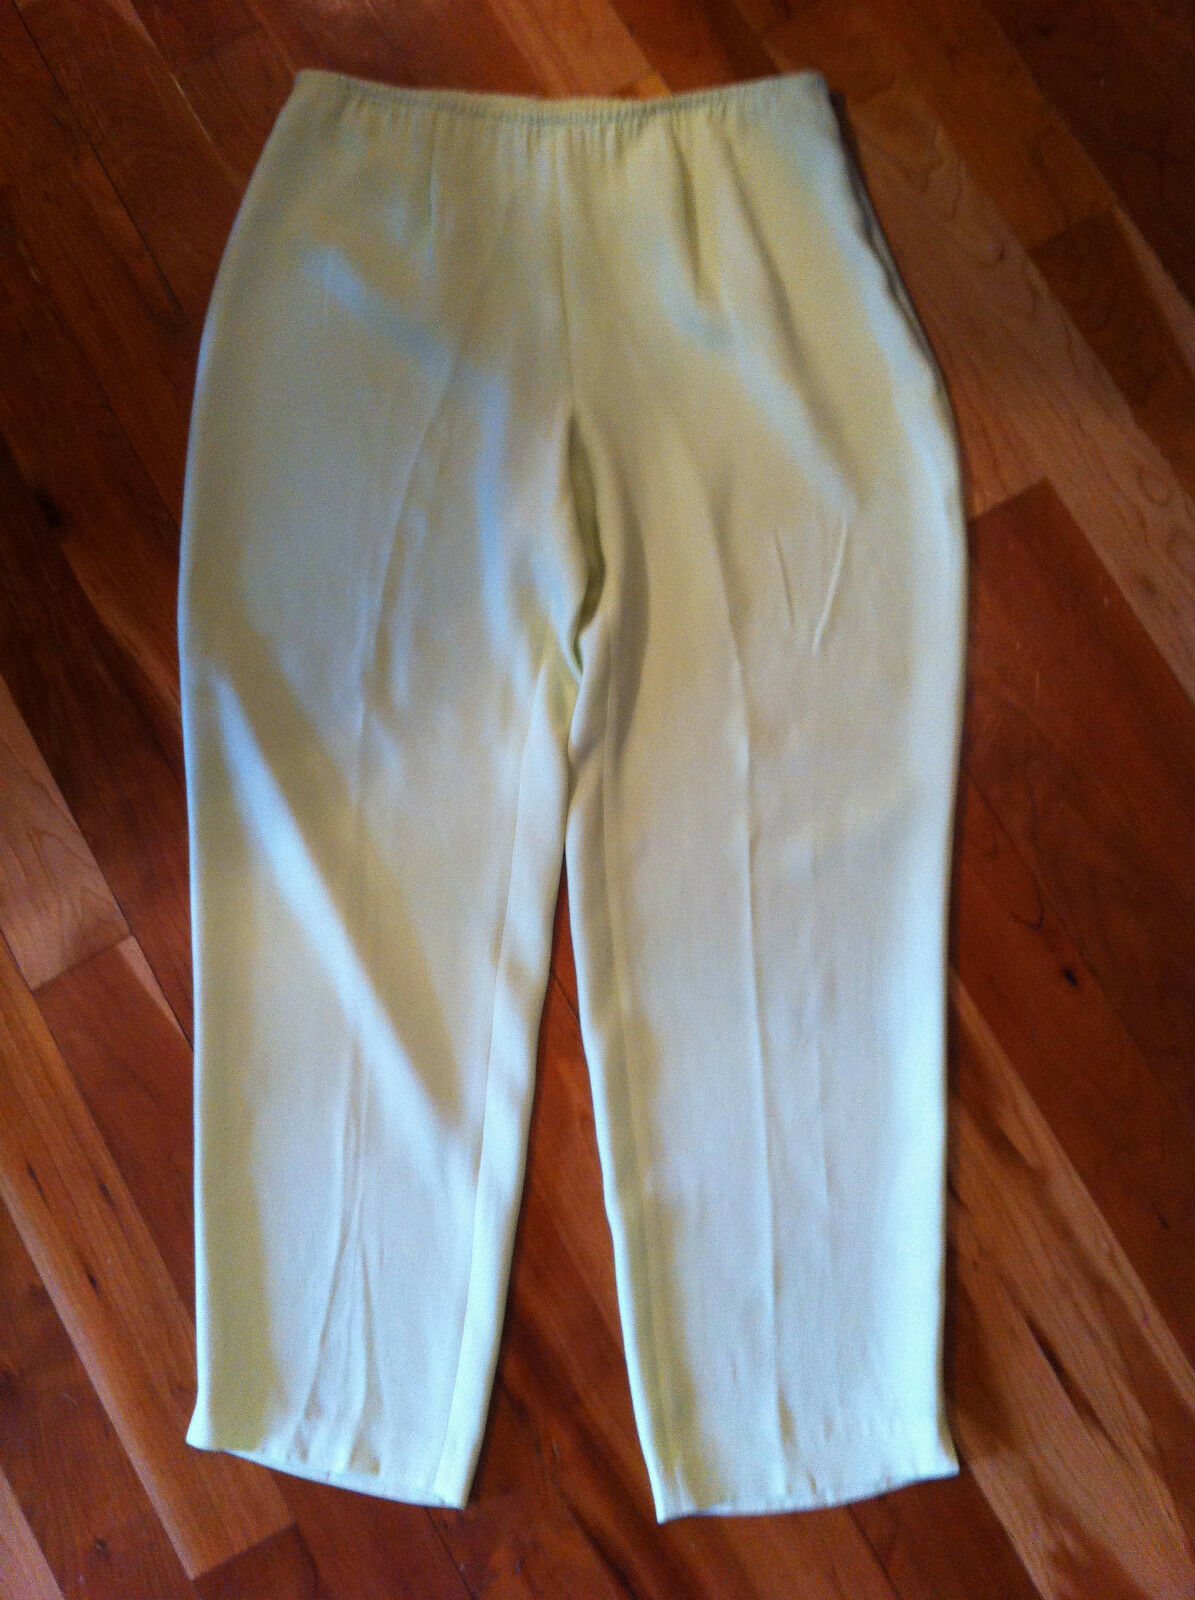 NWT EILEEN FISHER SILK LIGHT CELERY GREEN PANTS SIZE M SLIM ANKLE PANT